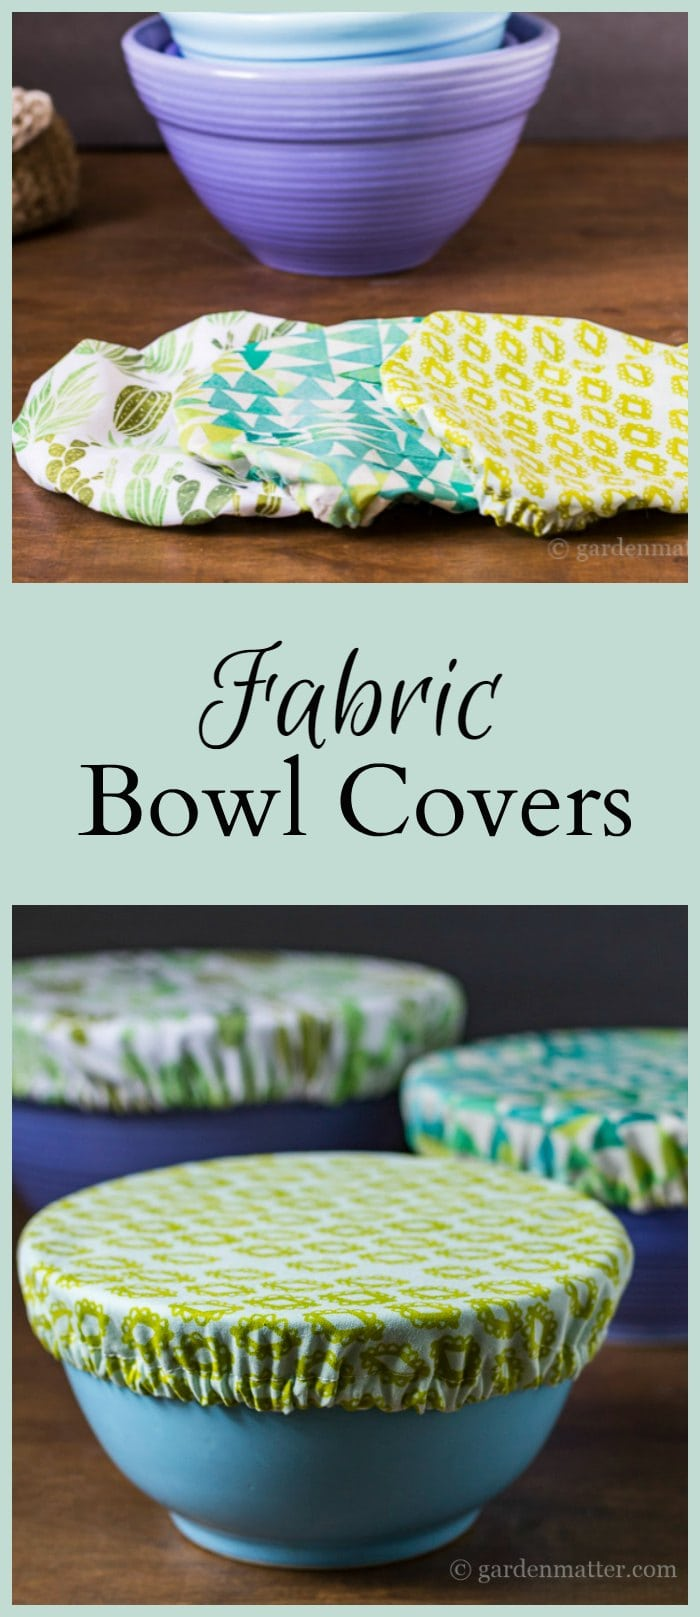 Fabric bowl covers collage